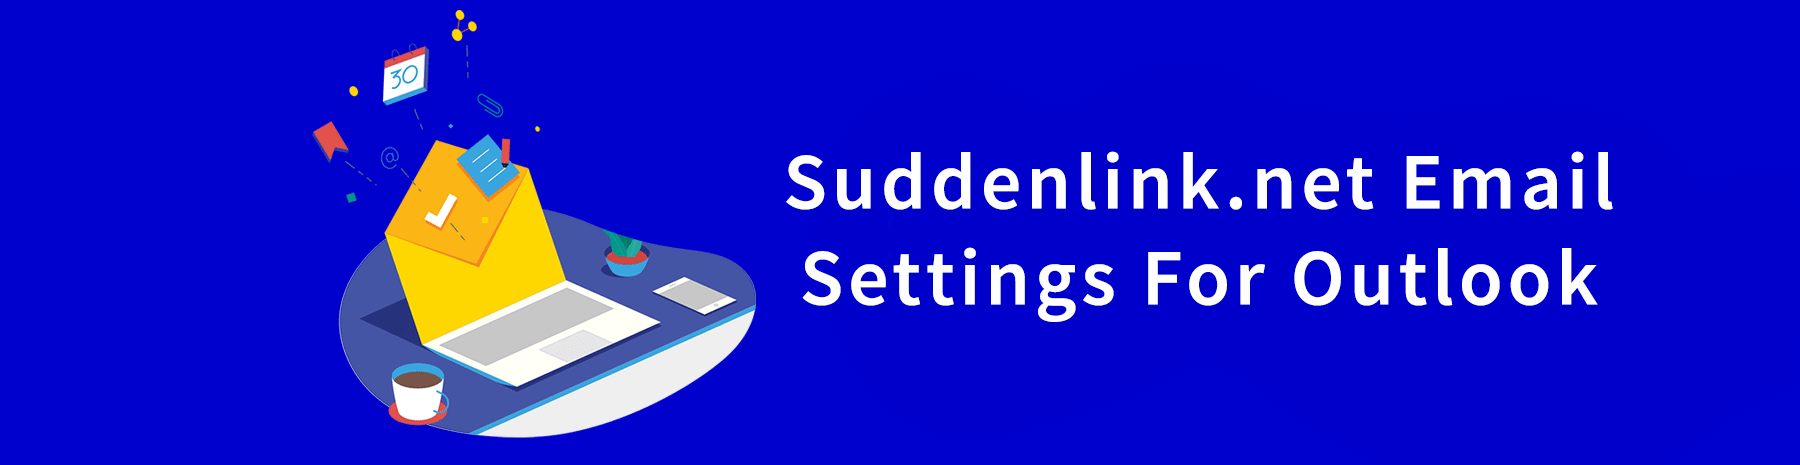 Suddenlink Email Outlook Settings